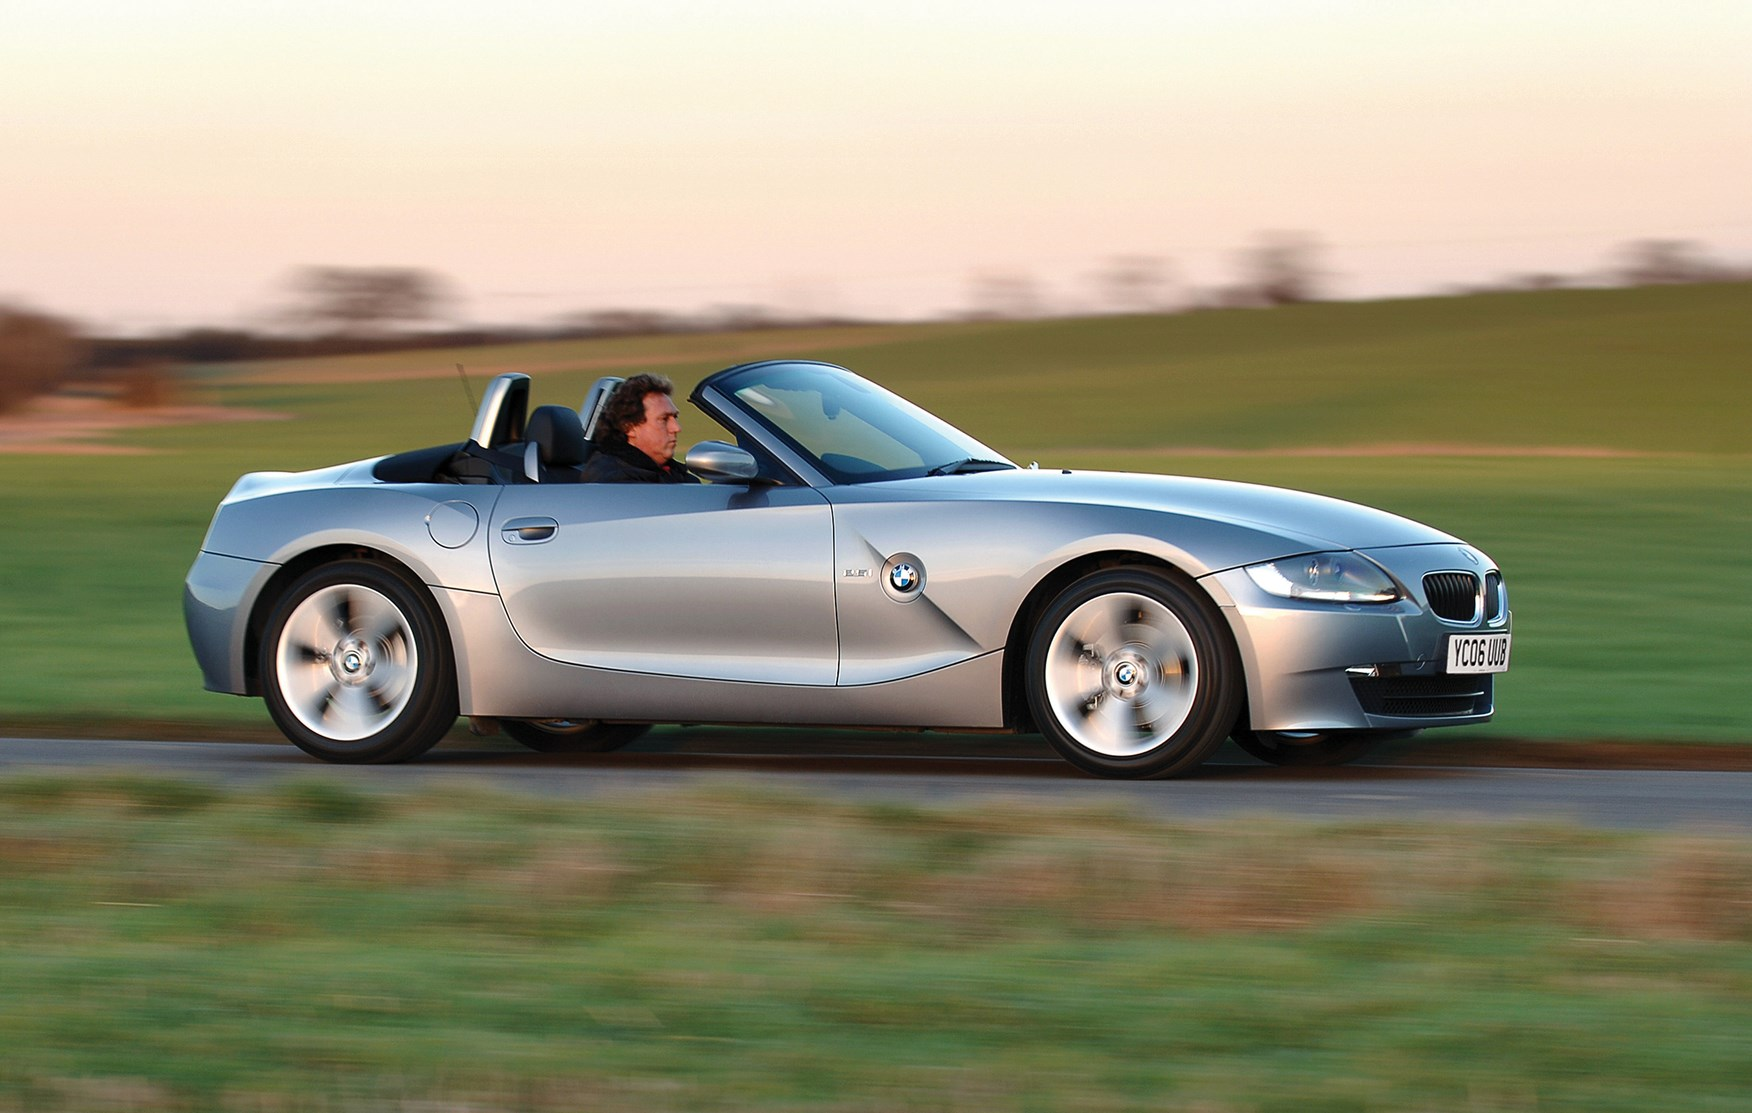 Bmw Z4 Problems Bmw Z4 E89 2009 On Review Problems And